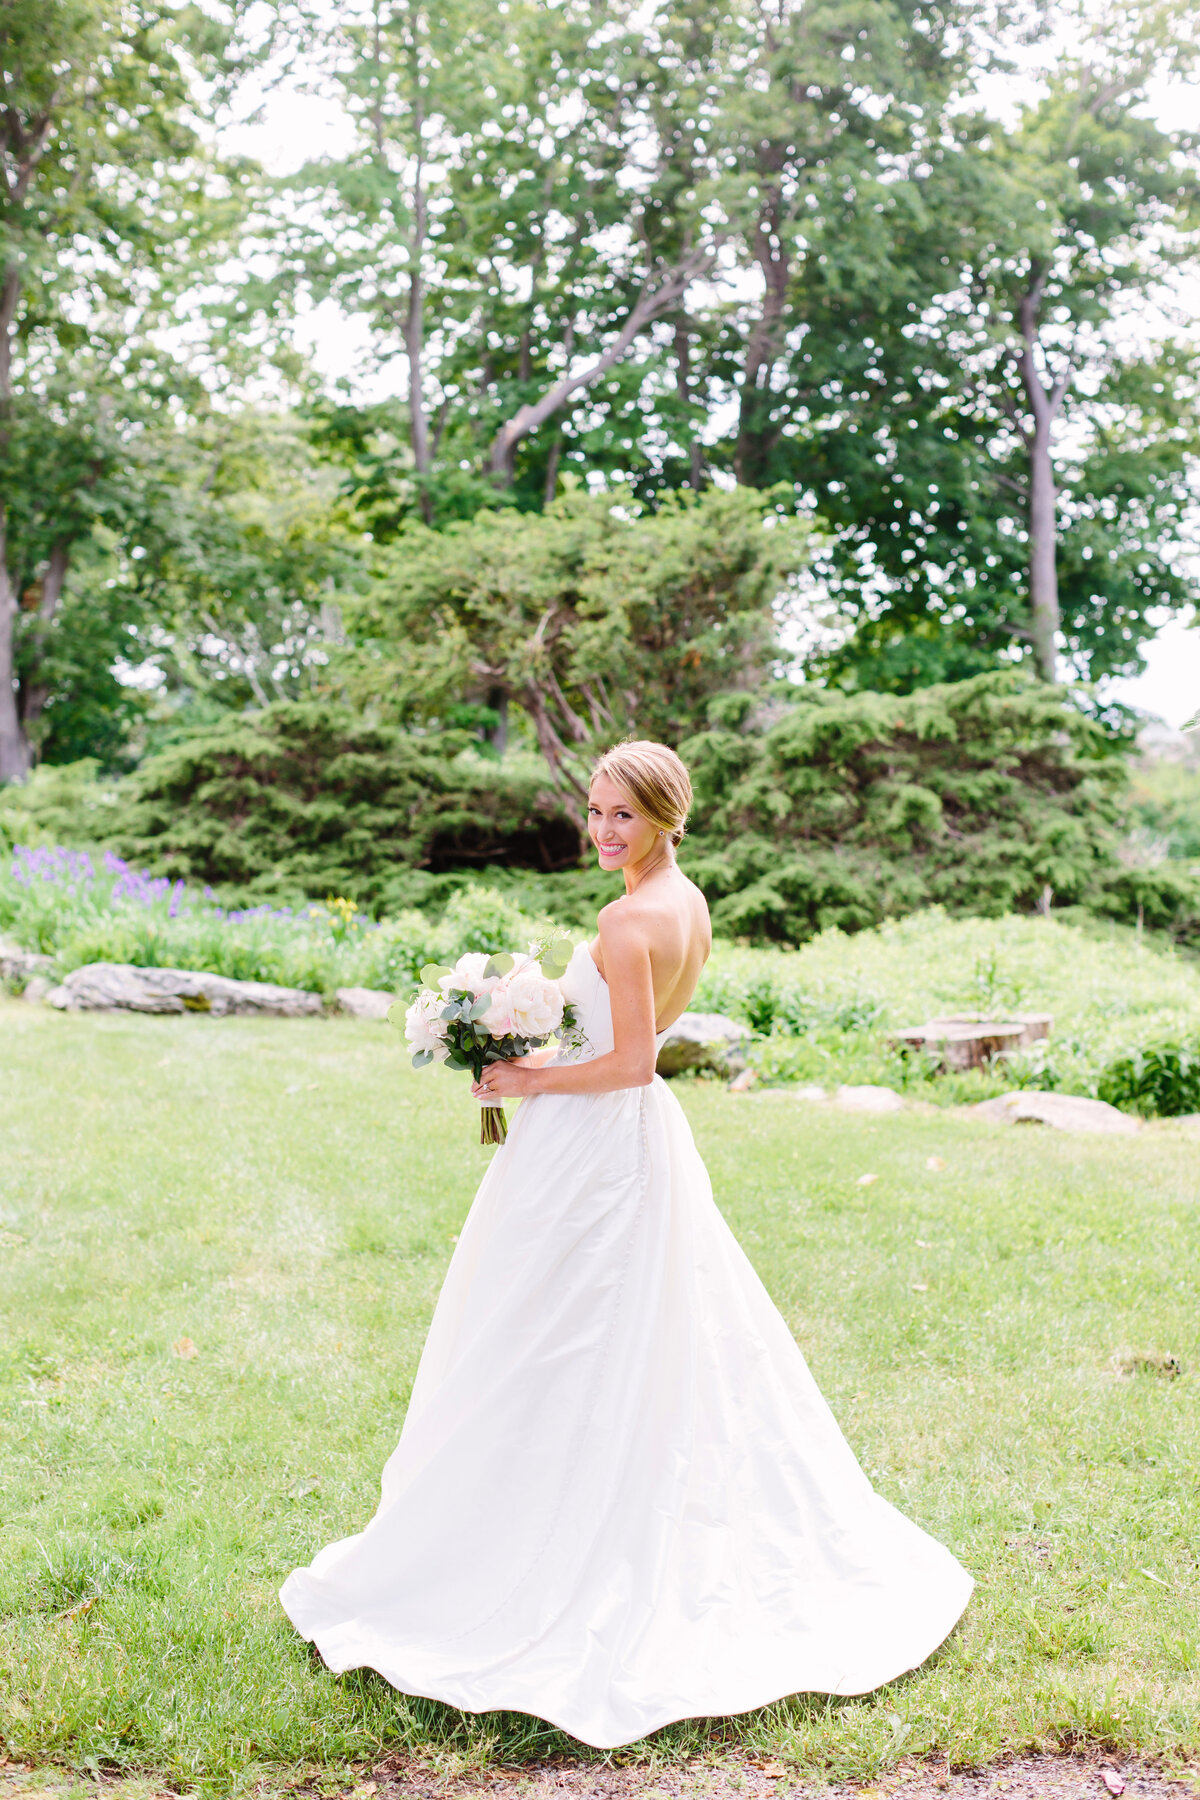 Rachel Buckley Weddings Photography Maine Wedding Lifestyle Studio Joyful Timeless Imagery Natural Portraits Destination15